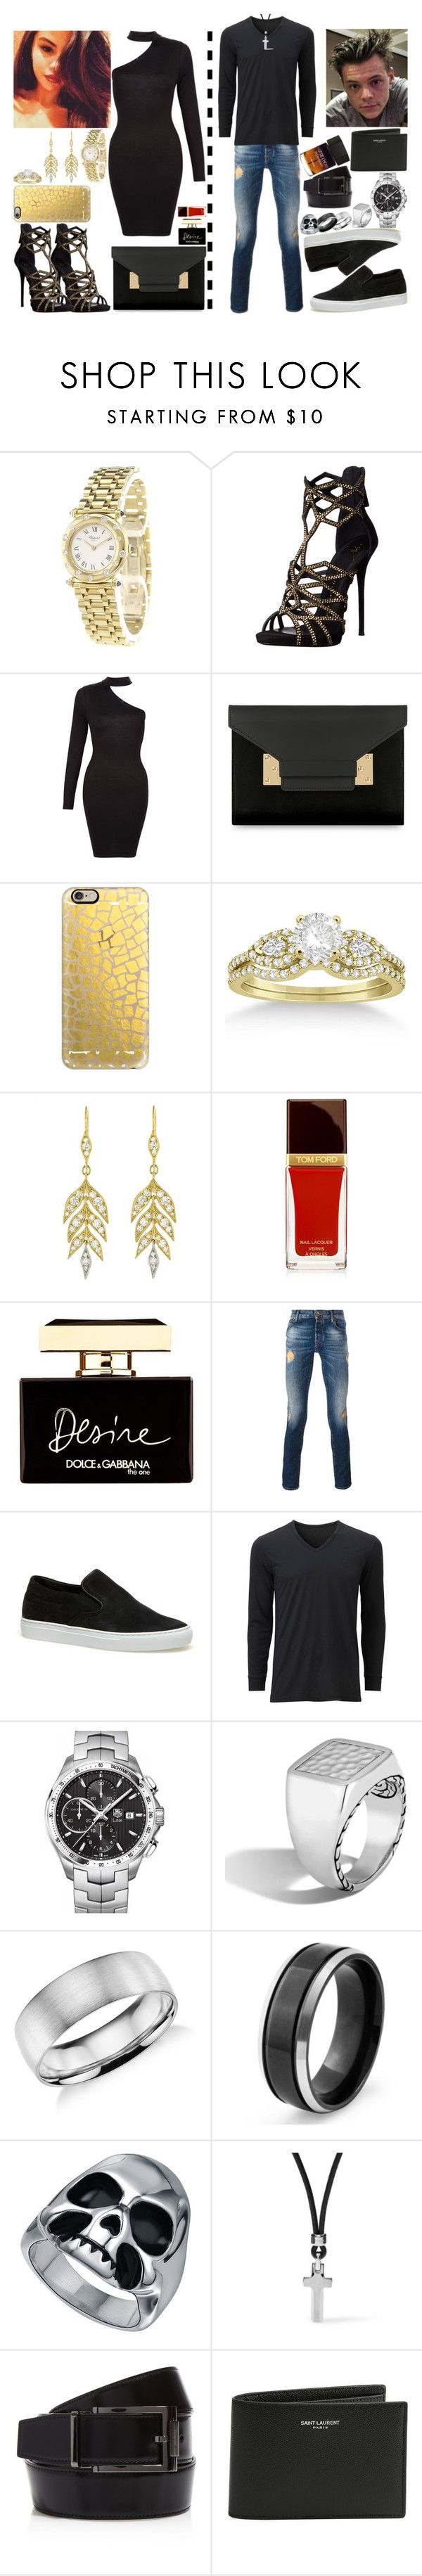 """""""Harlena At Wild Night Out(Harry Styles&Selena Gomez)"""" by ludya ❤ liked on Polyvore featuring Chopard, Giuseppe Zanotti, Sophie Hulme, Casetify, Allurez, Cathy Waterman, Dolce&Gabbana, Jacob Cohёn, Lacoste and Uniqlo"""